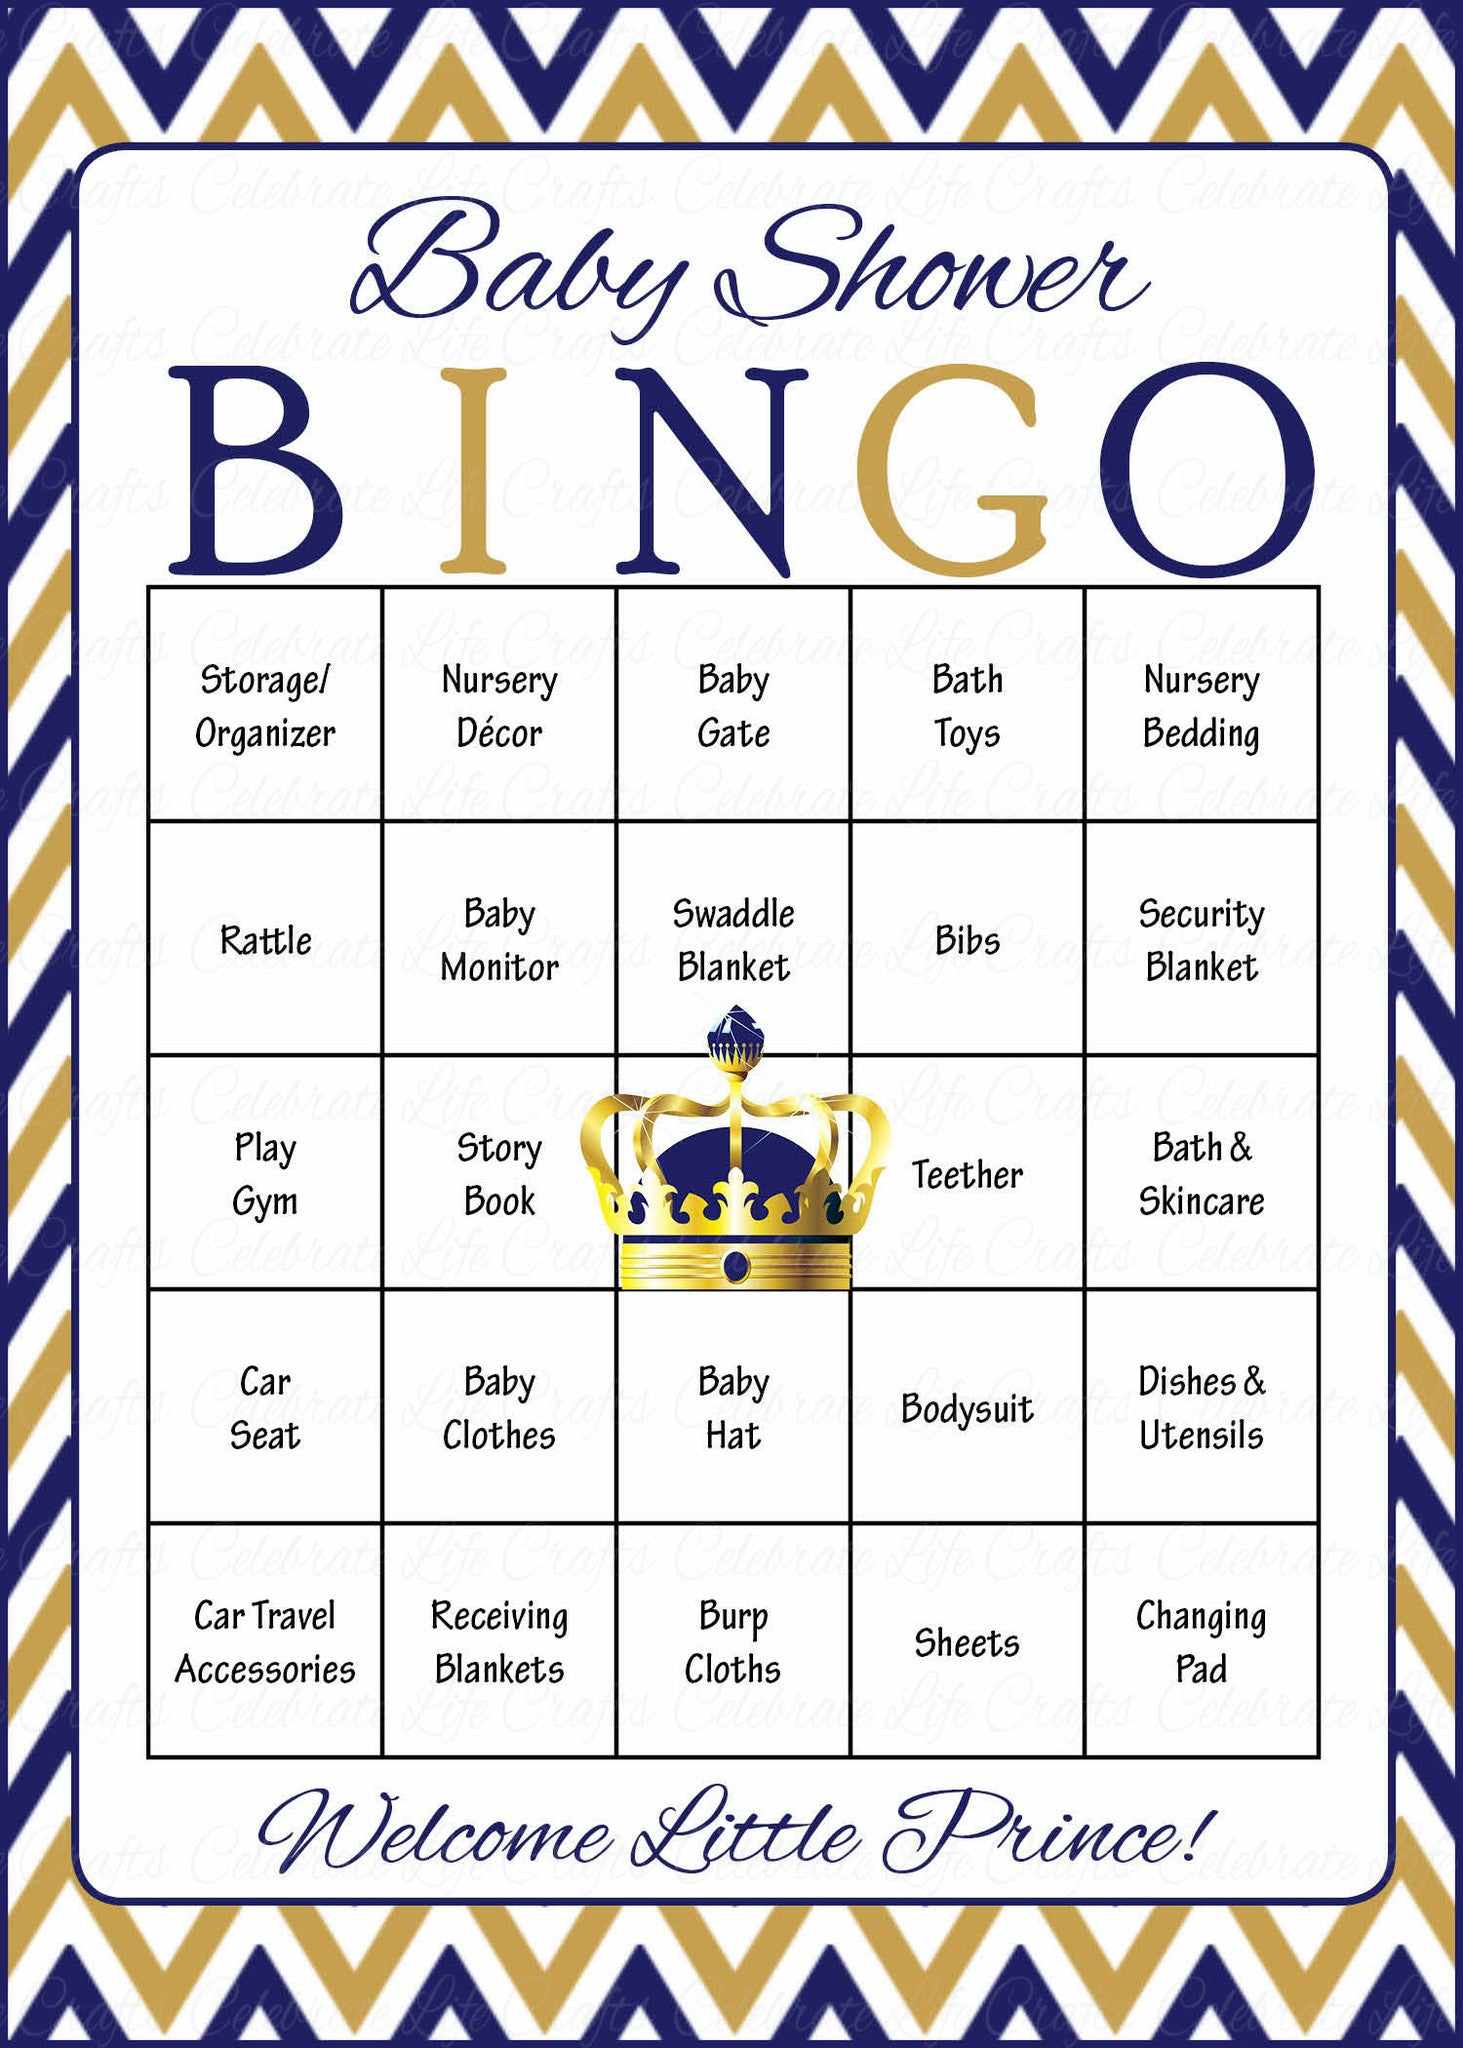 Prince baby shower game download for boy baby bingo celebrate prince baby bingo cards printable download prefilled baby shower game for boy navy gold solutioingenieria Choice Image